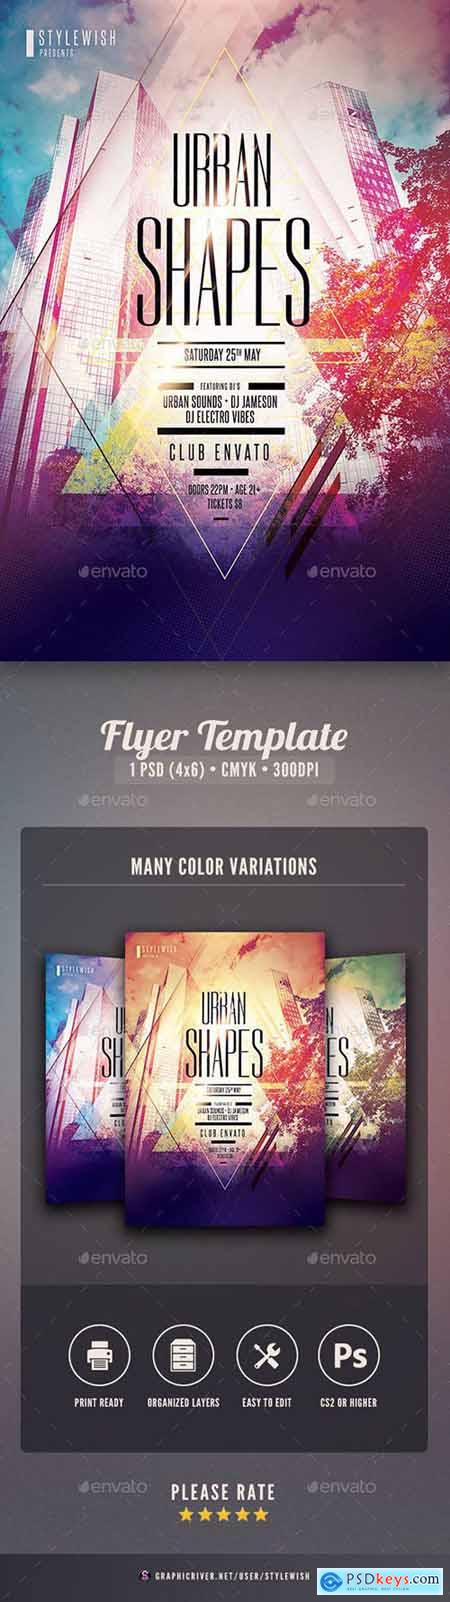 Graphicriver Urban Shapes Flyer